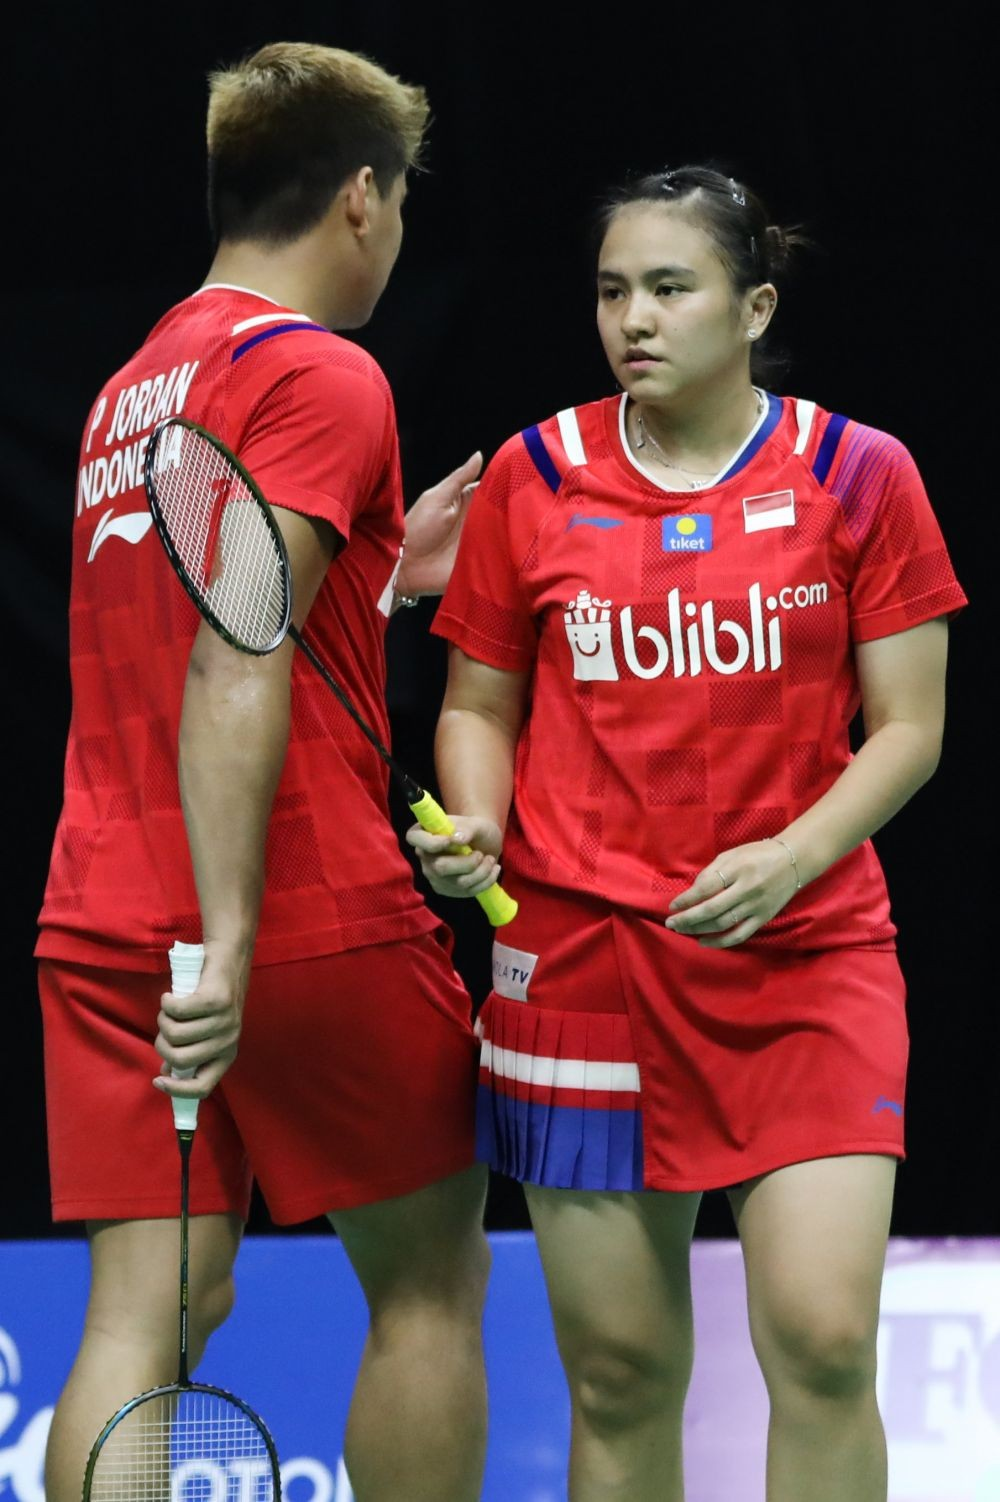 PBSI Home Tournament: Hampir Kalah, Praveen/Melati Menang Rubber Set